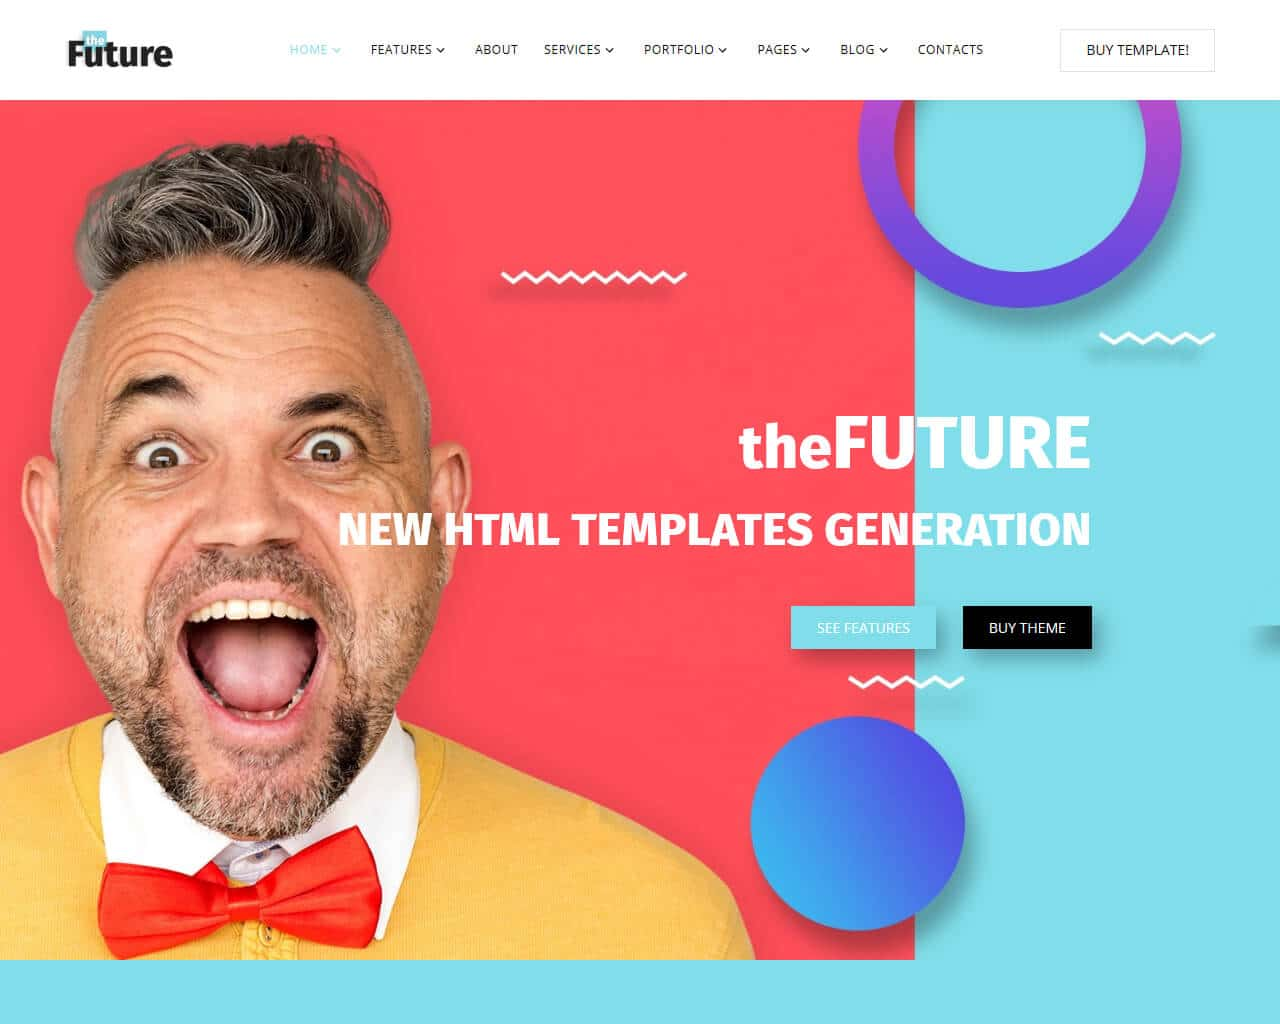 The Future Website Template